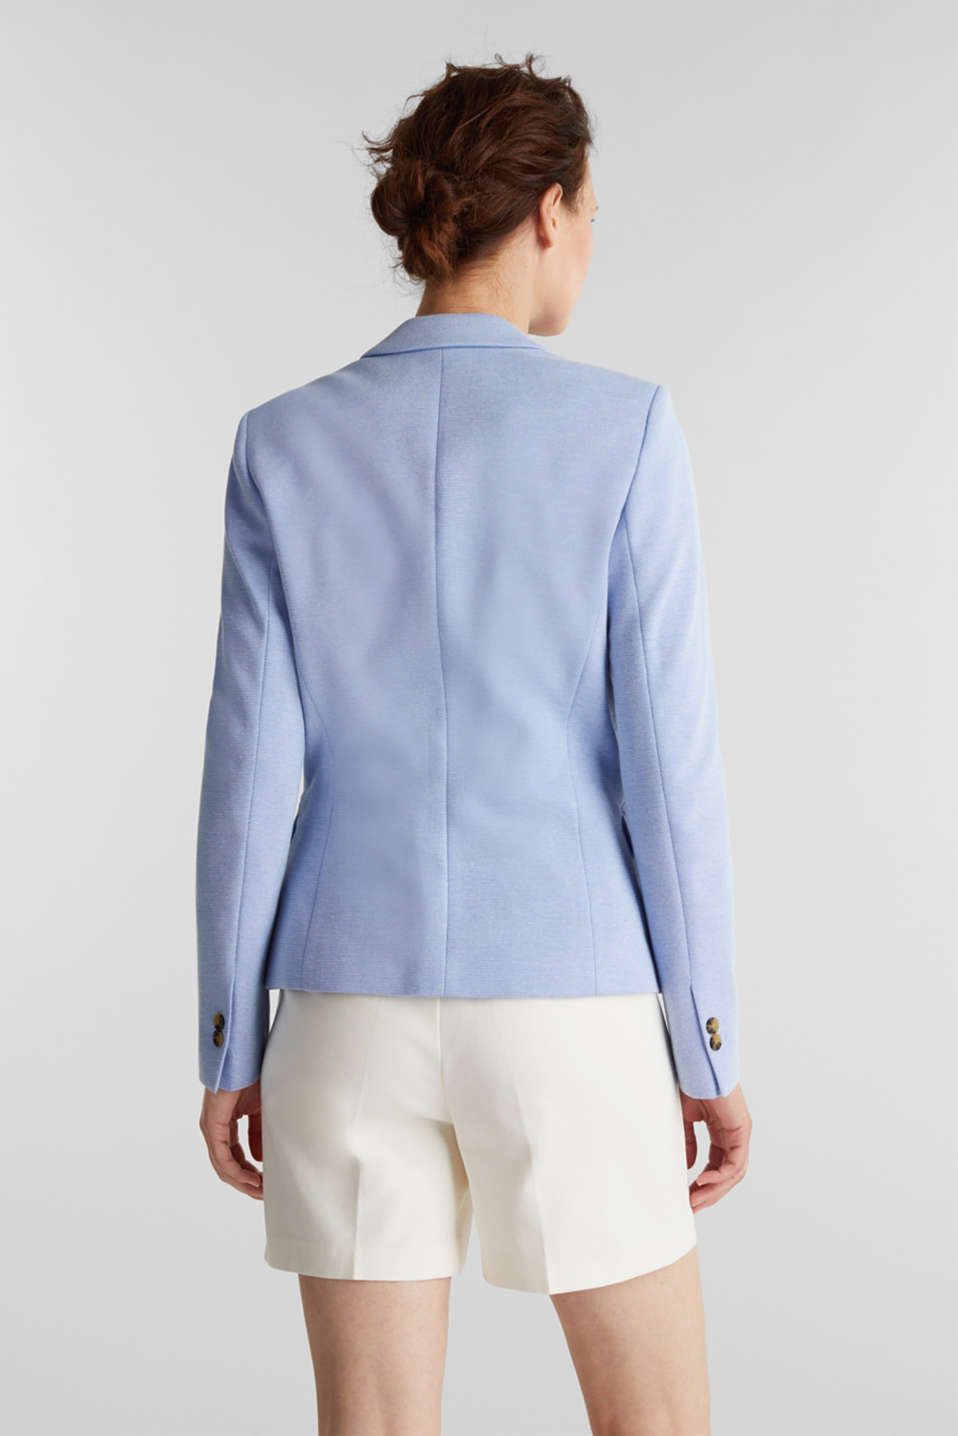 Fitted textured blazer, recycled, LIGHT BLUE, detail image number 3